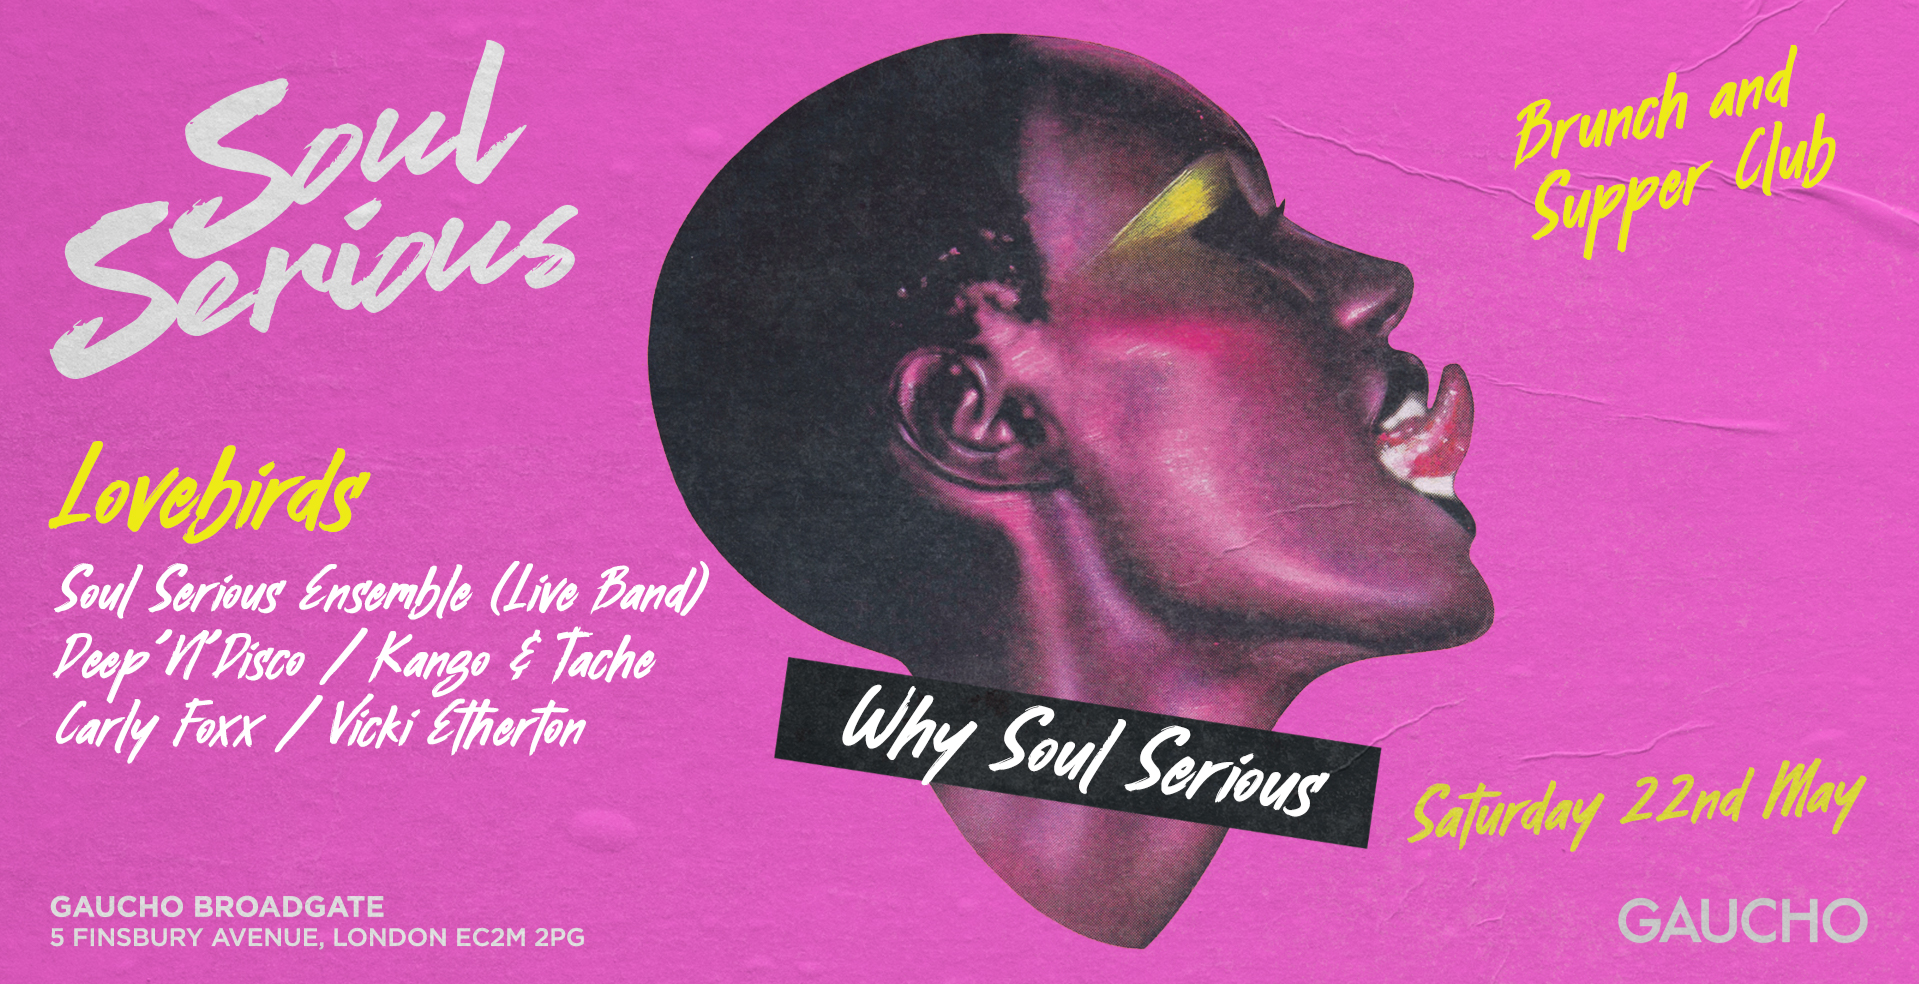 Soul Serious - Brunch & Supper Club with Lovebirds